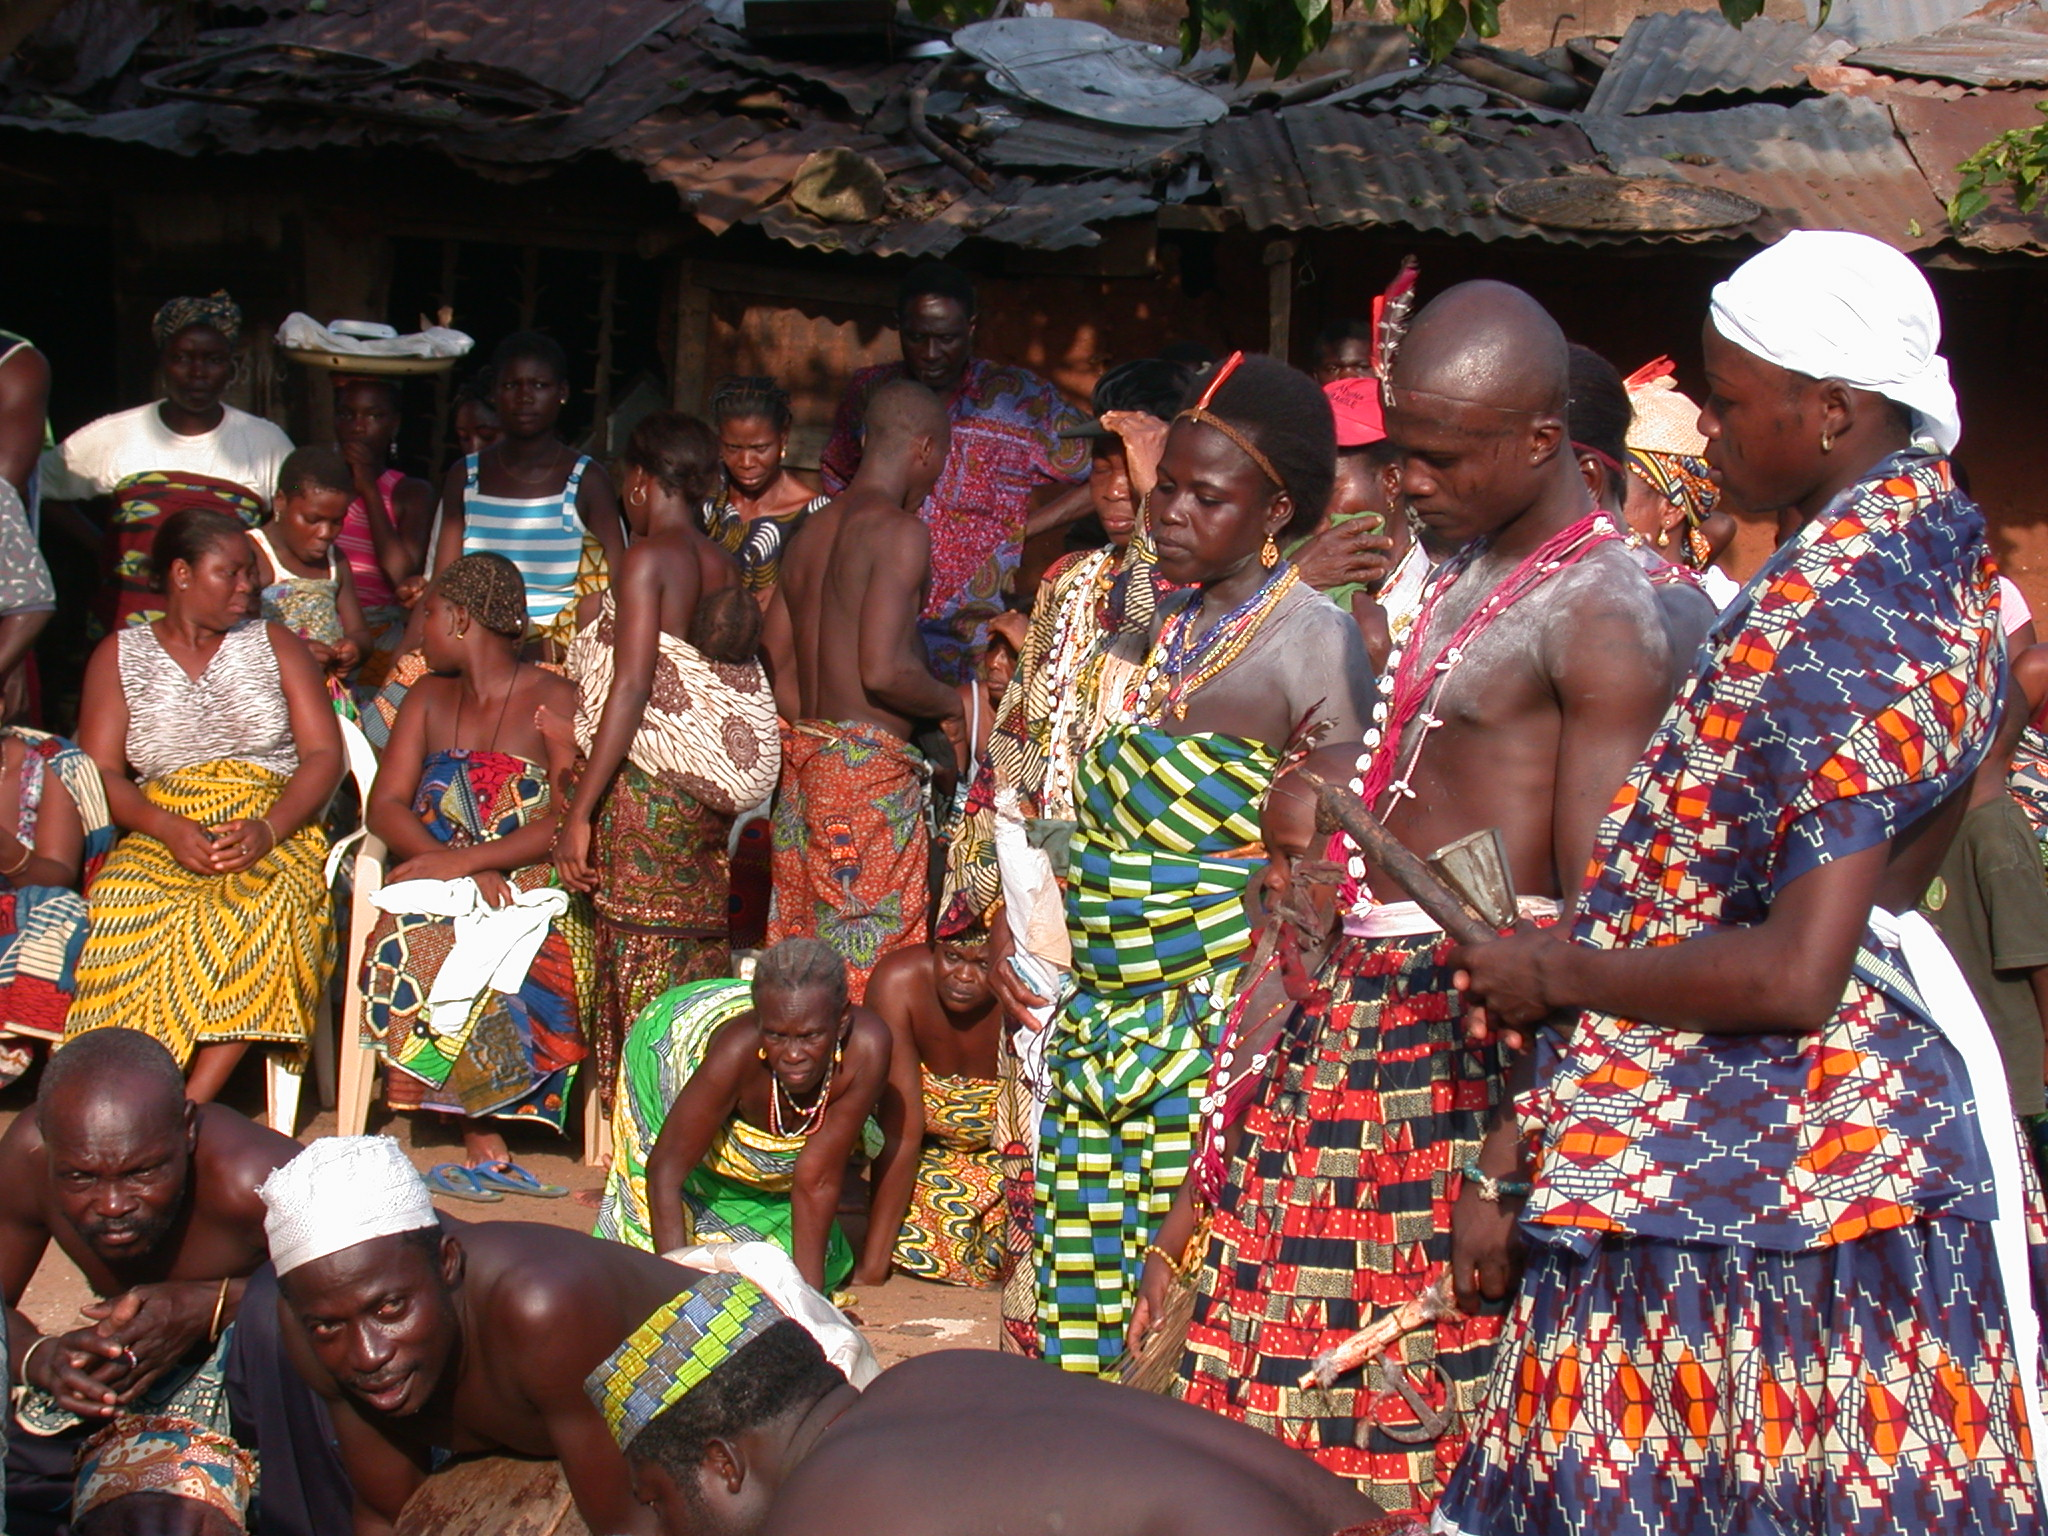 Participants Watch Sacrifice Preparations, Vodun Ritual, Ouidah, Benin